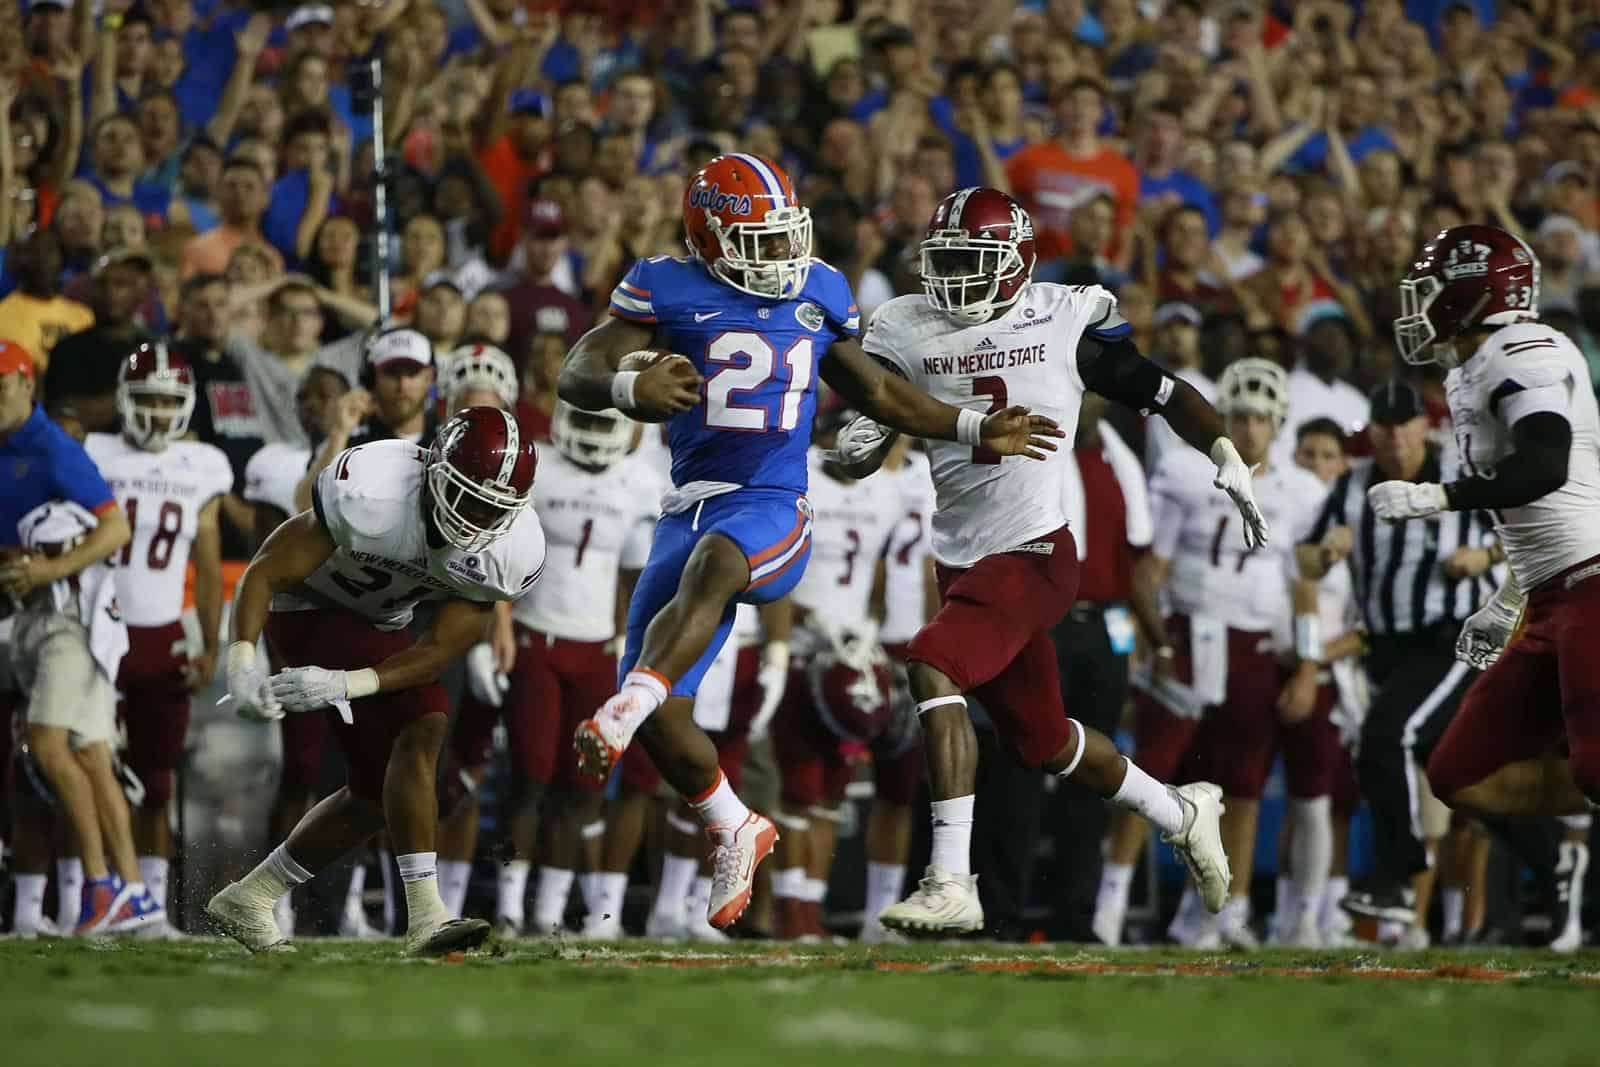 Uf Home Football Schedule 2020.Florida Adds New Mexico State To 2020 Football Schedule